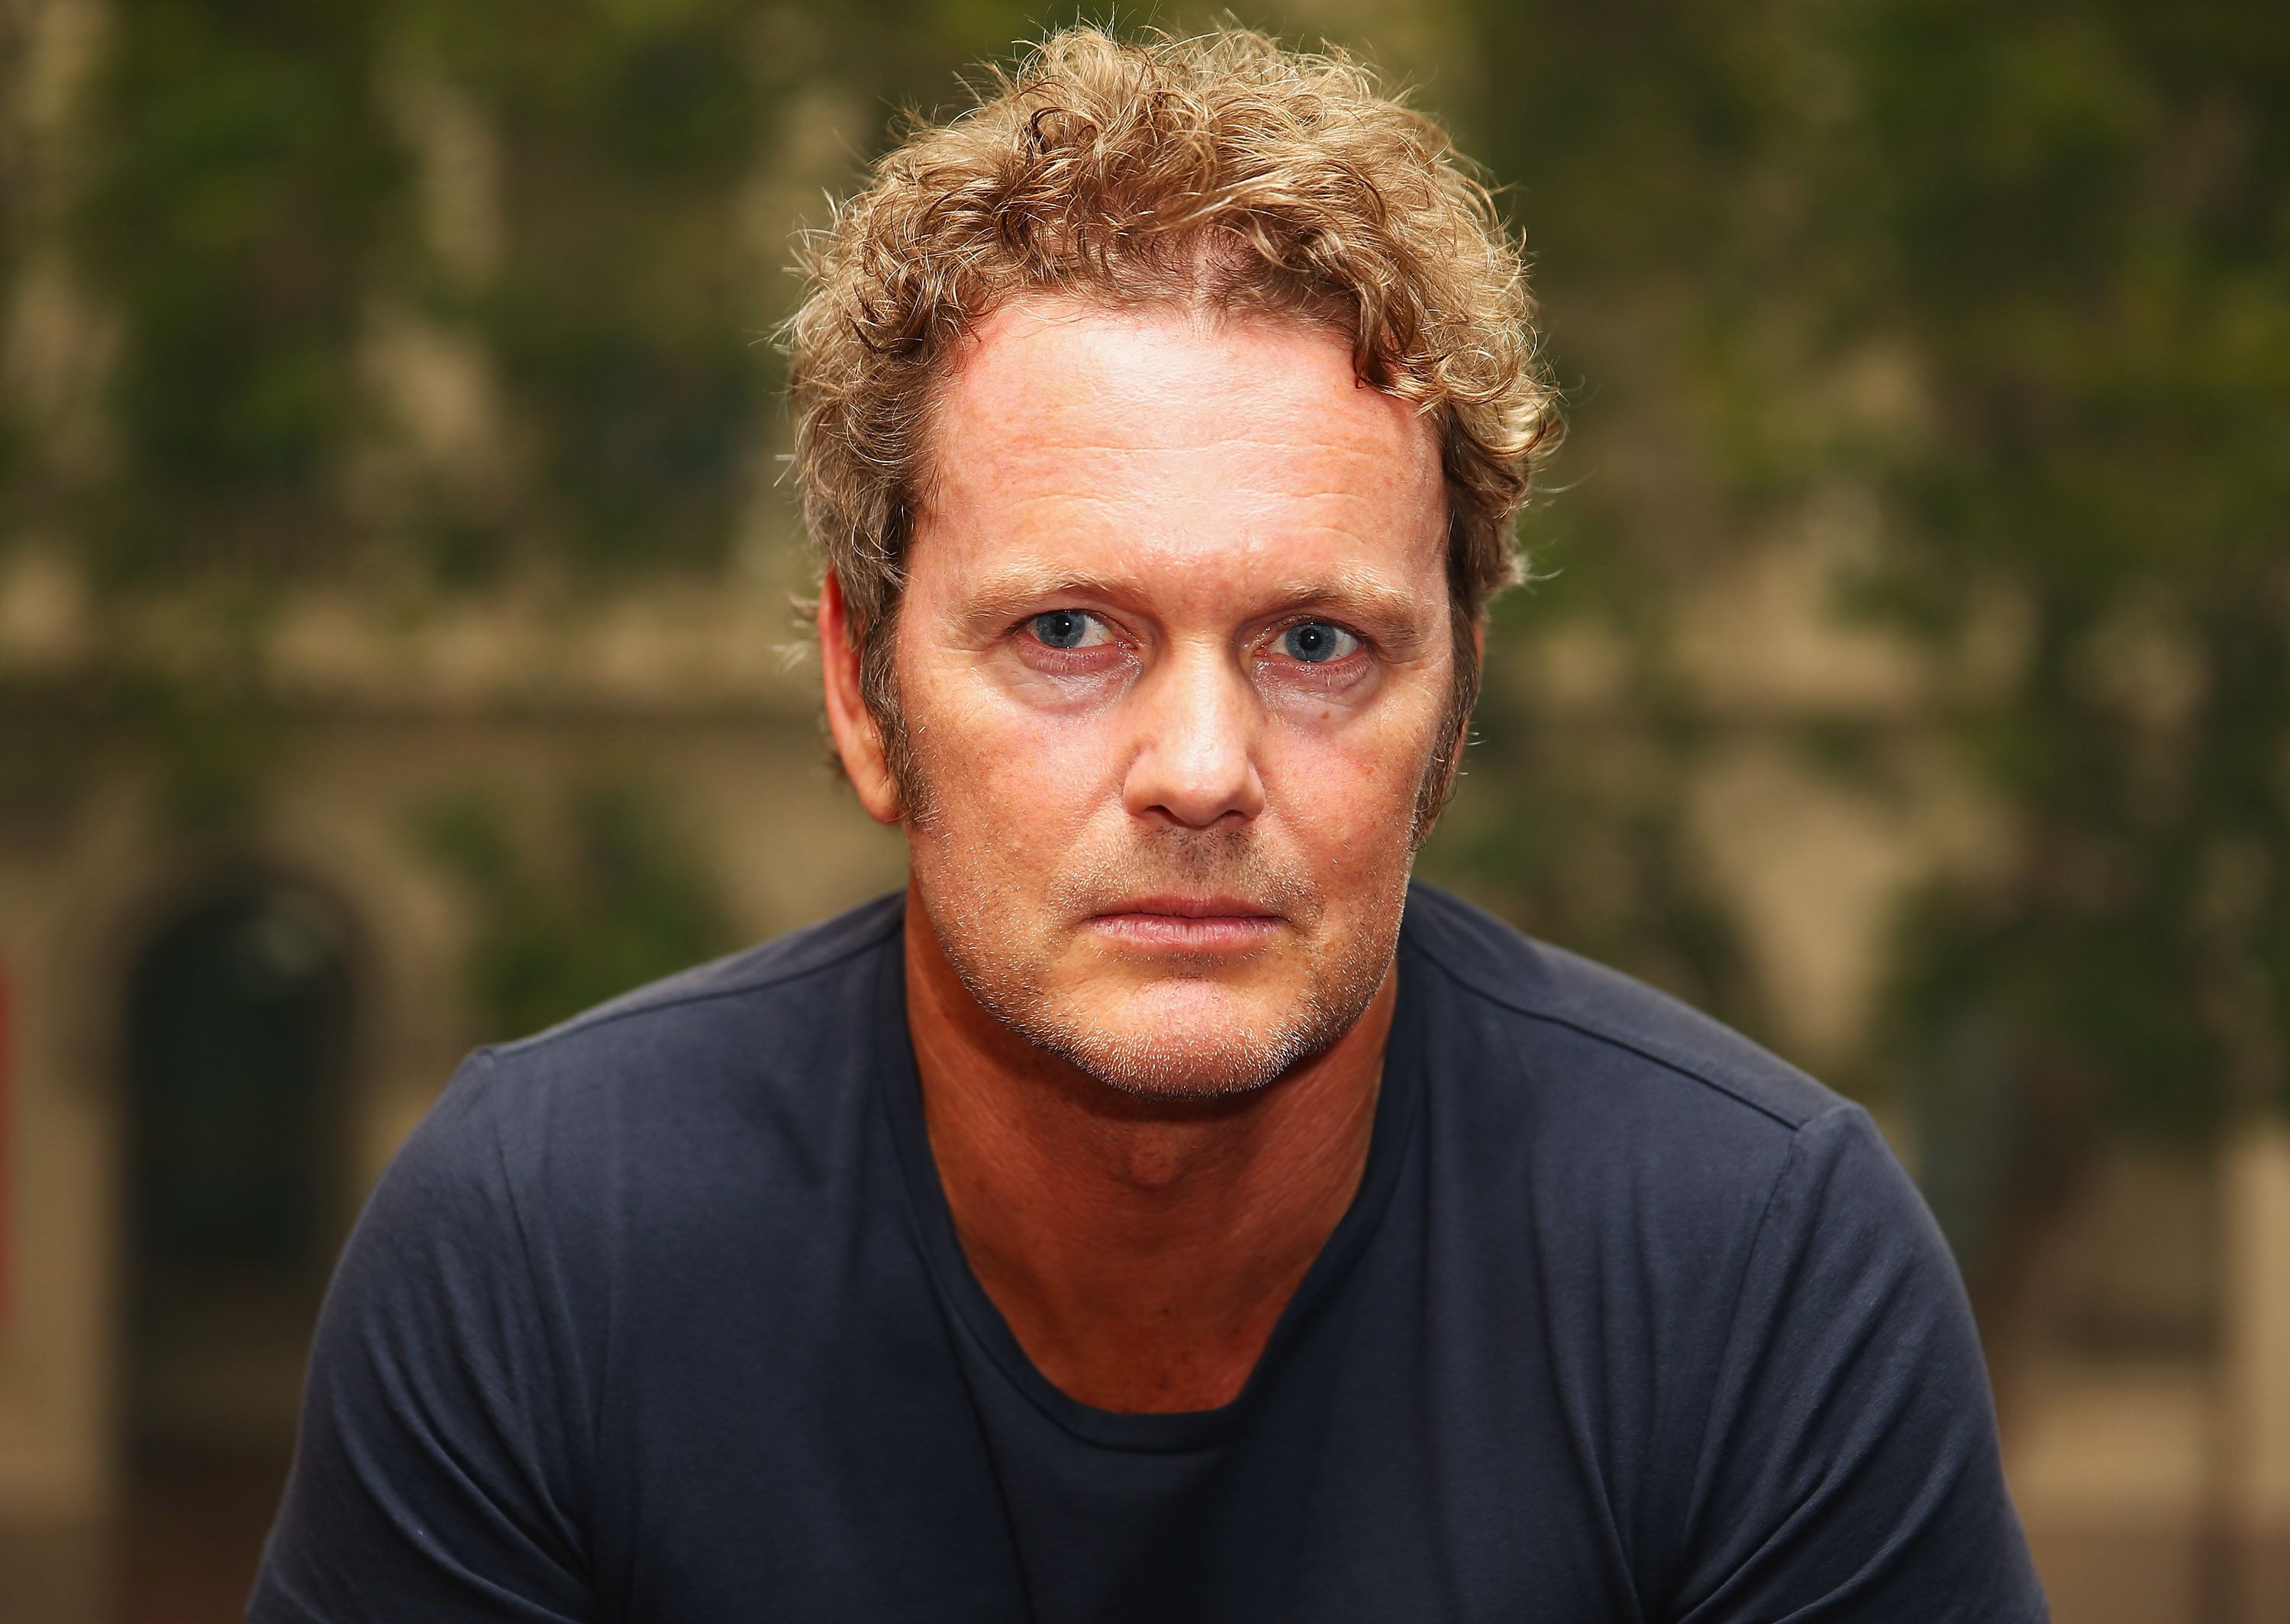 Former 'Neighbours' Star Craig McLachlan Charged With Indecent